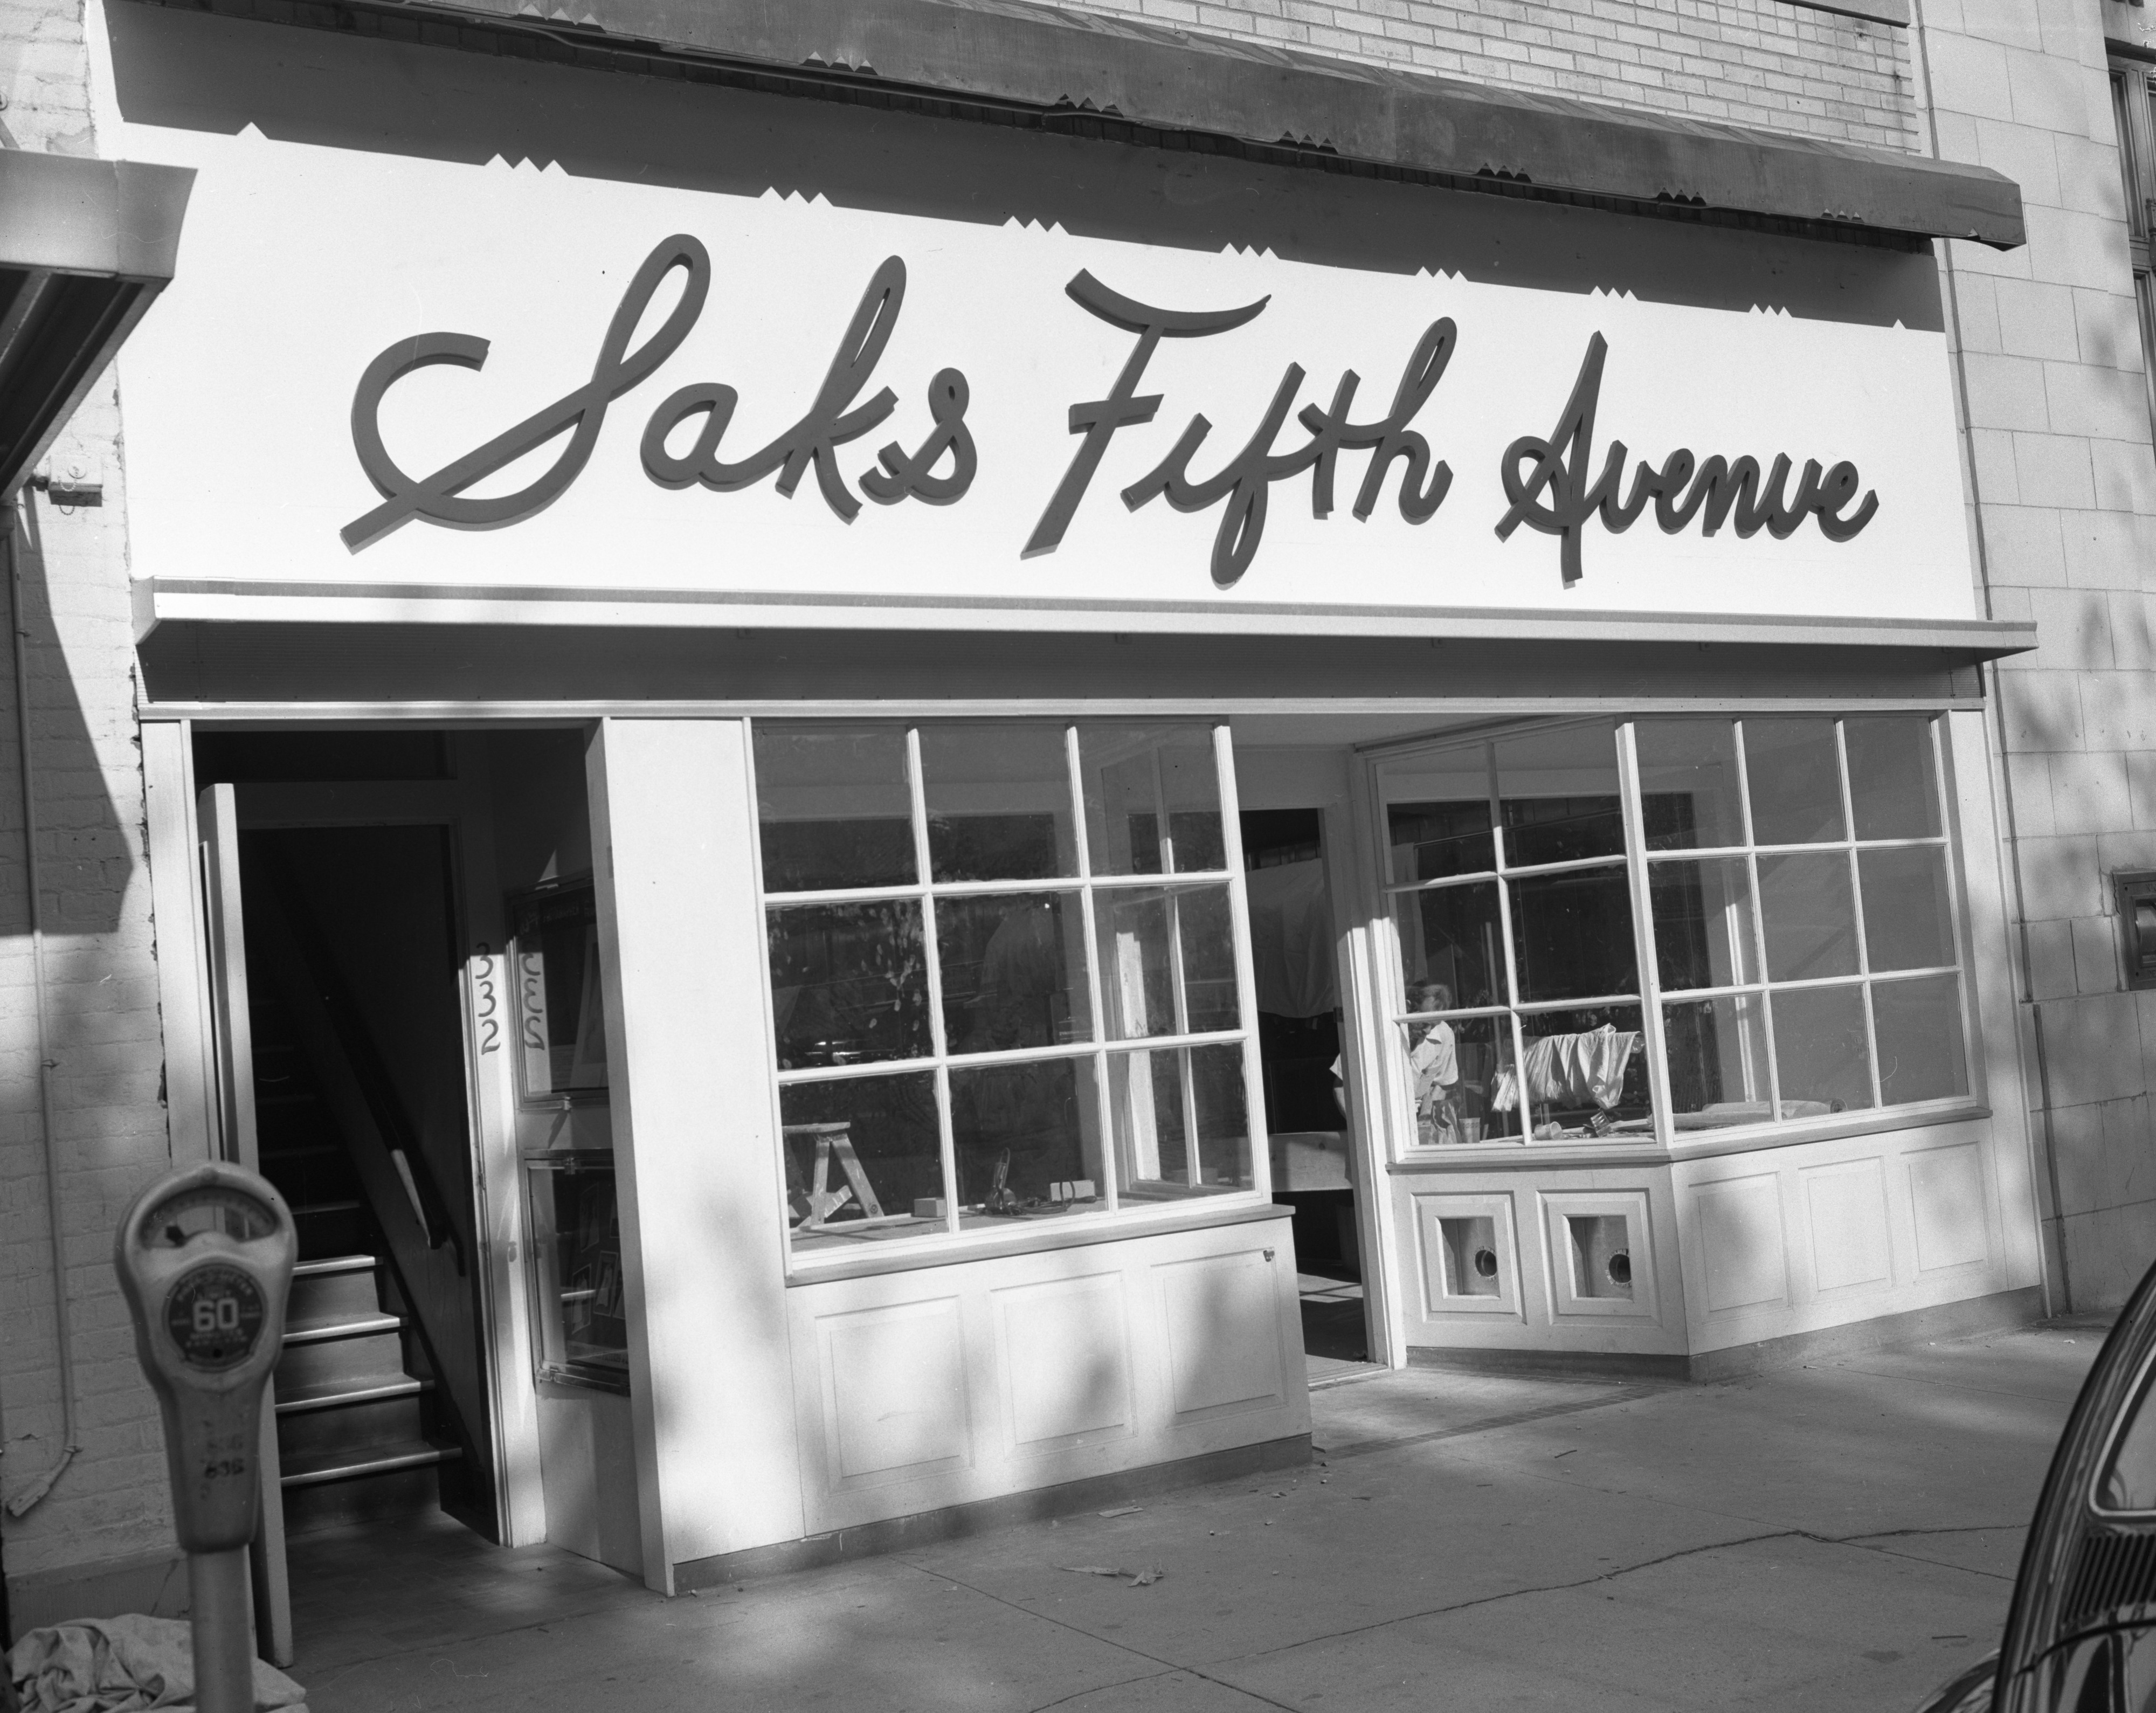 Saks Fifth Avenue, 332 S. State St, August 1960 image